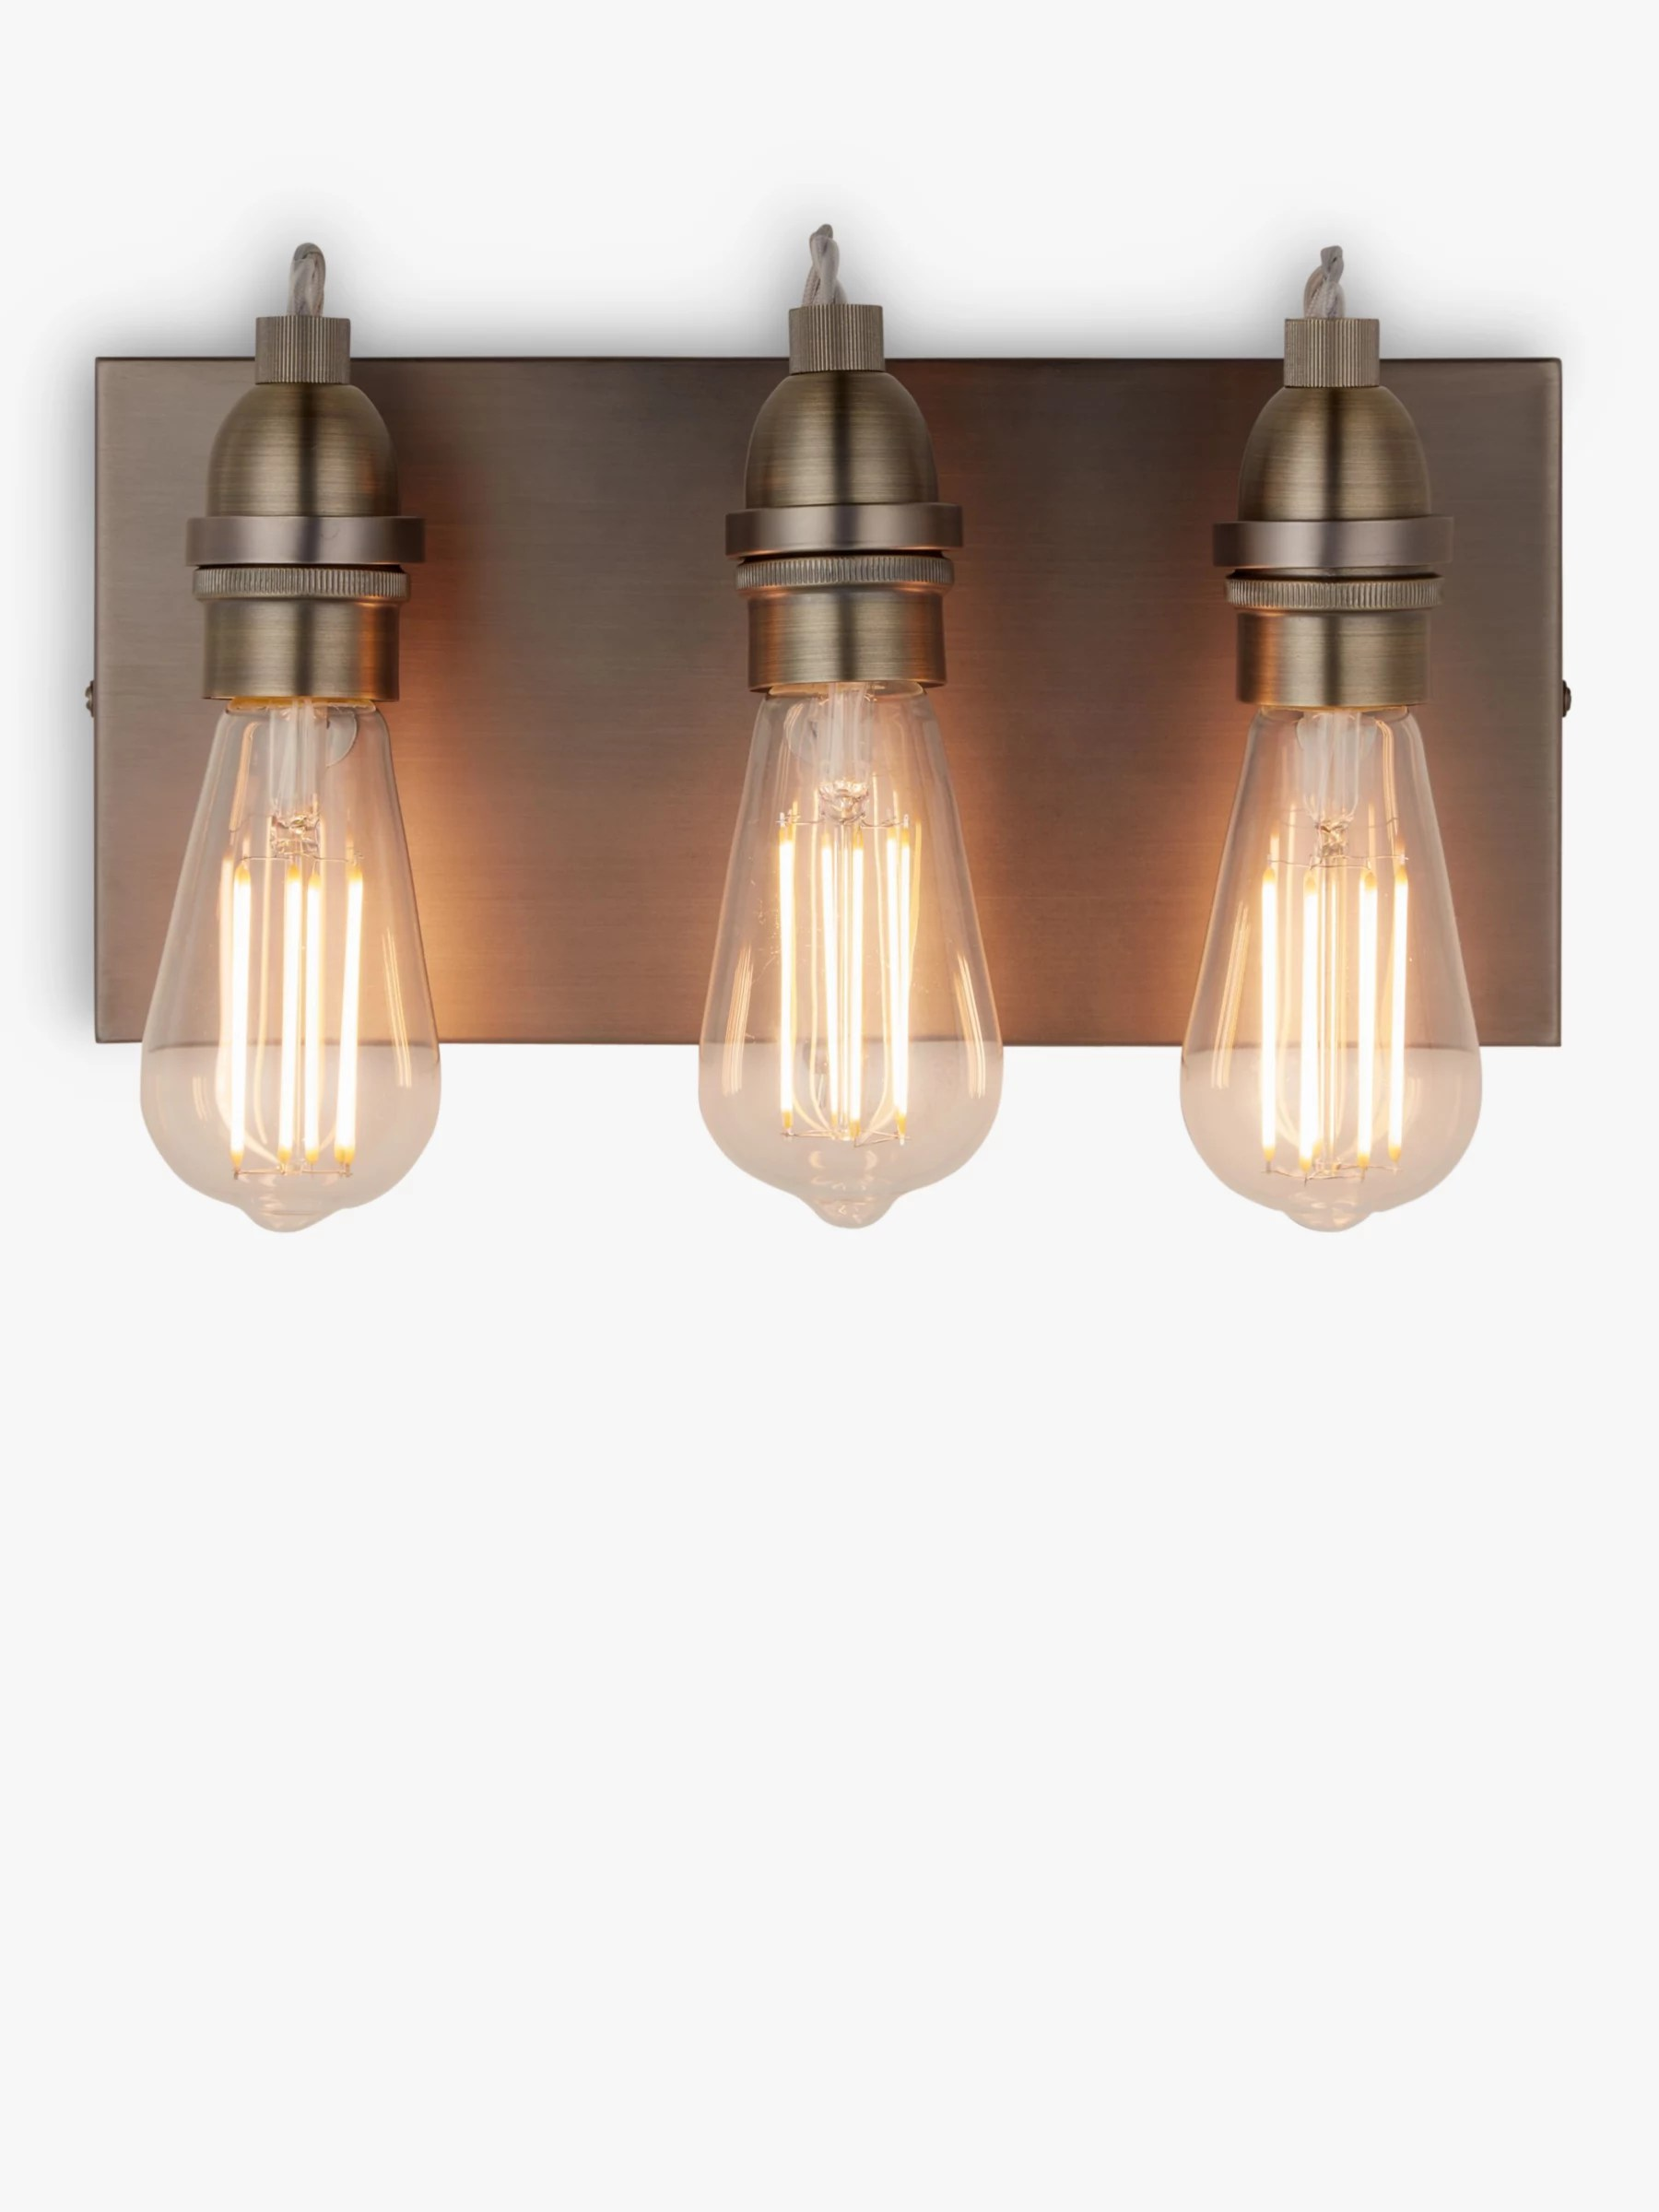 living room wall lights ideas wooden walls in lighting furniture john lewis partners bistro 3 arm light antique brass